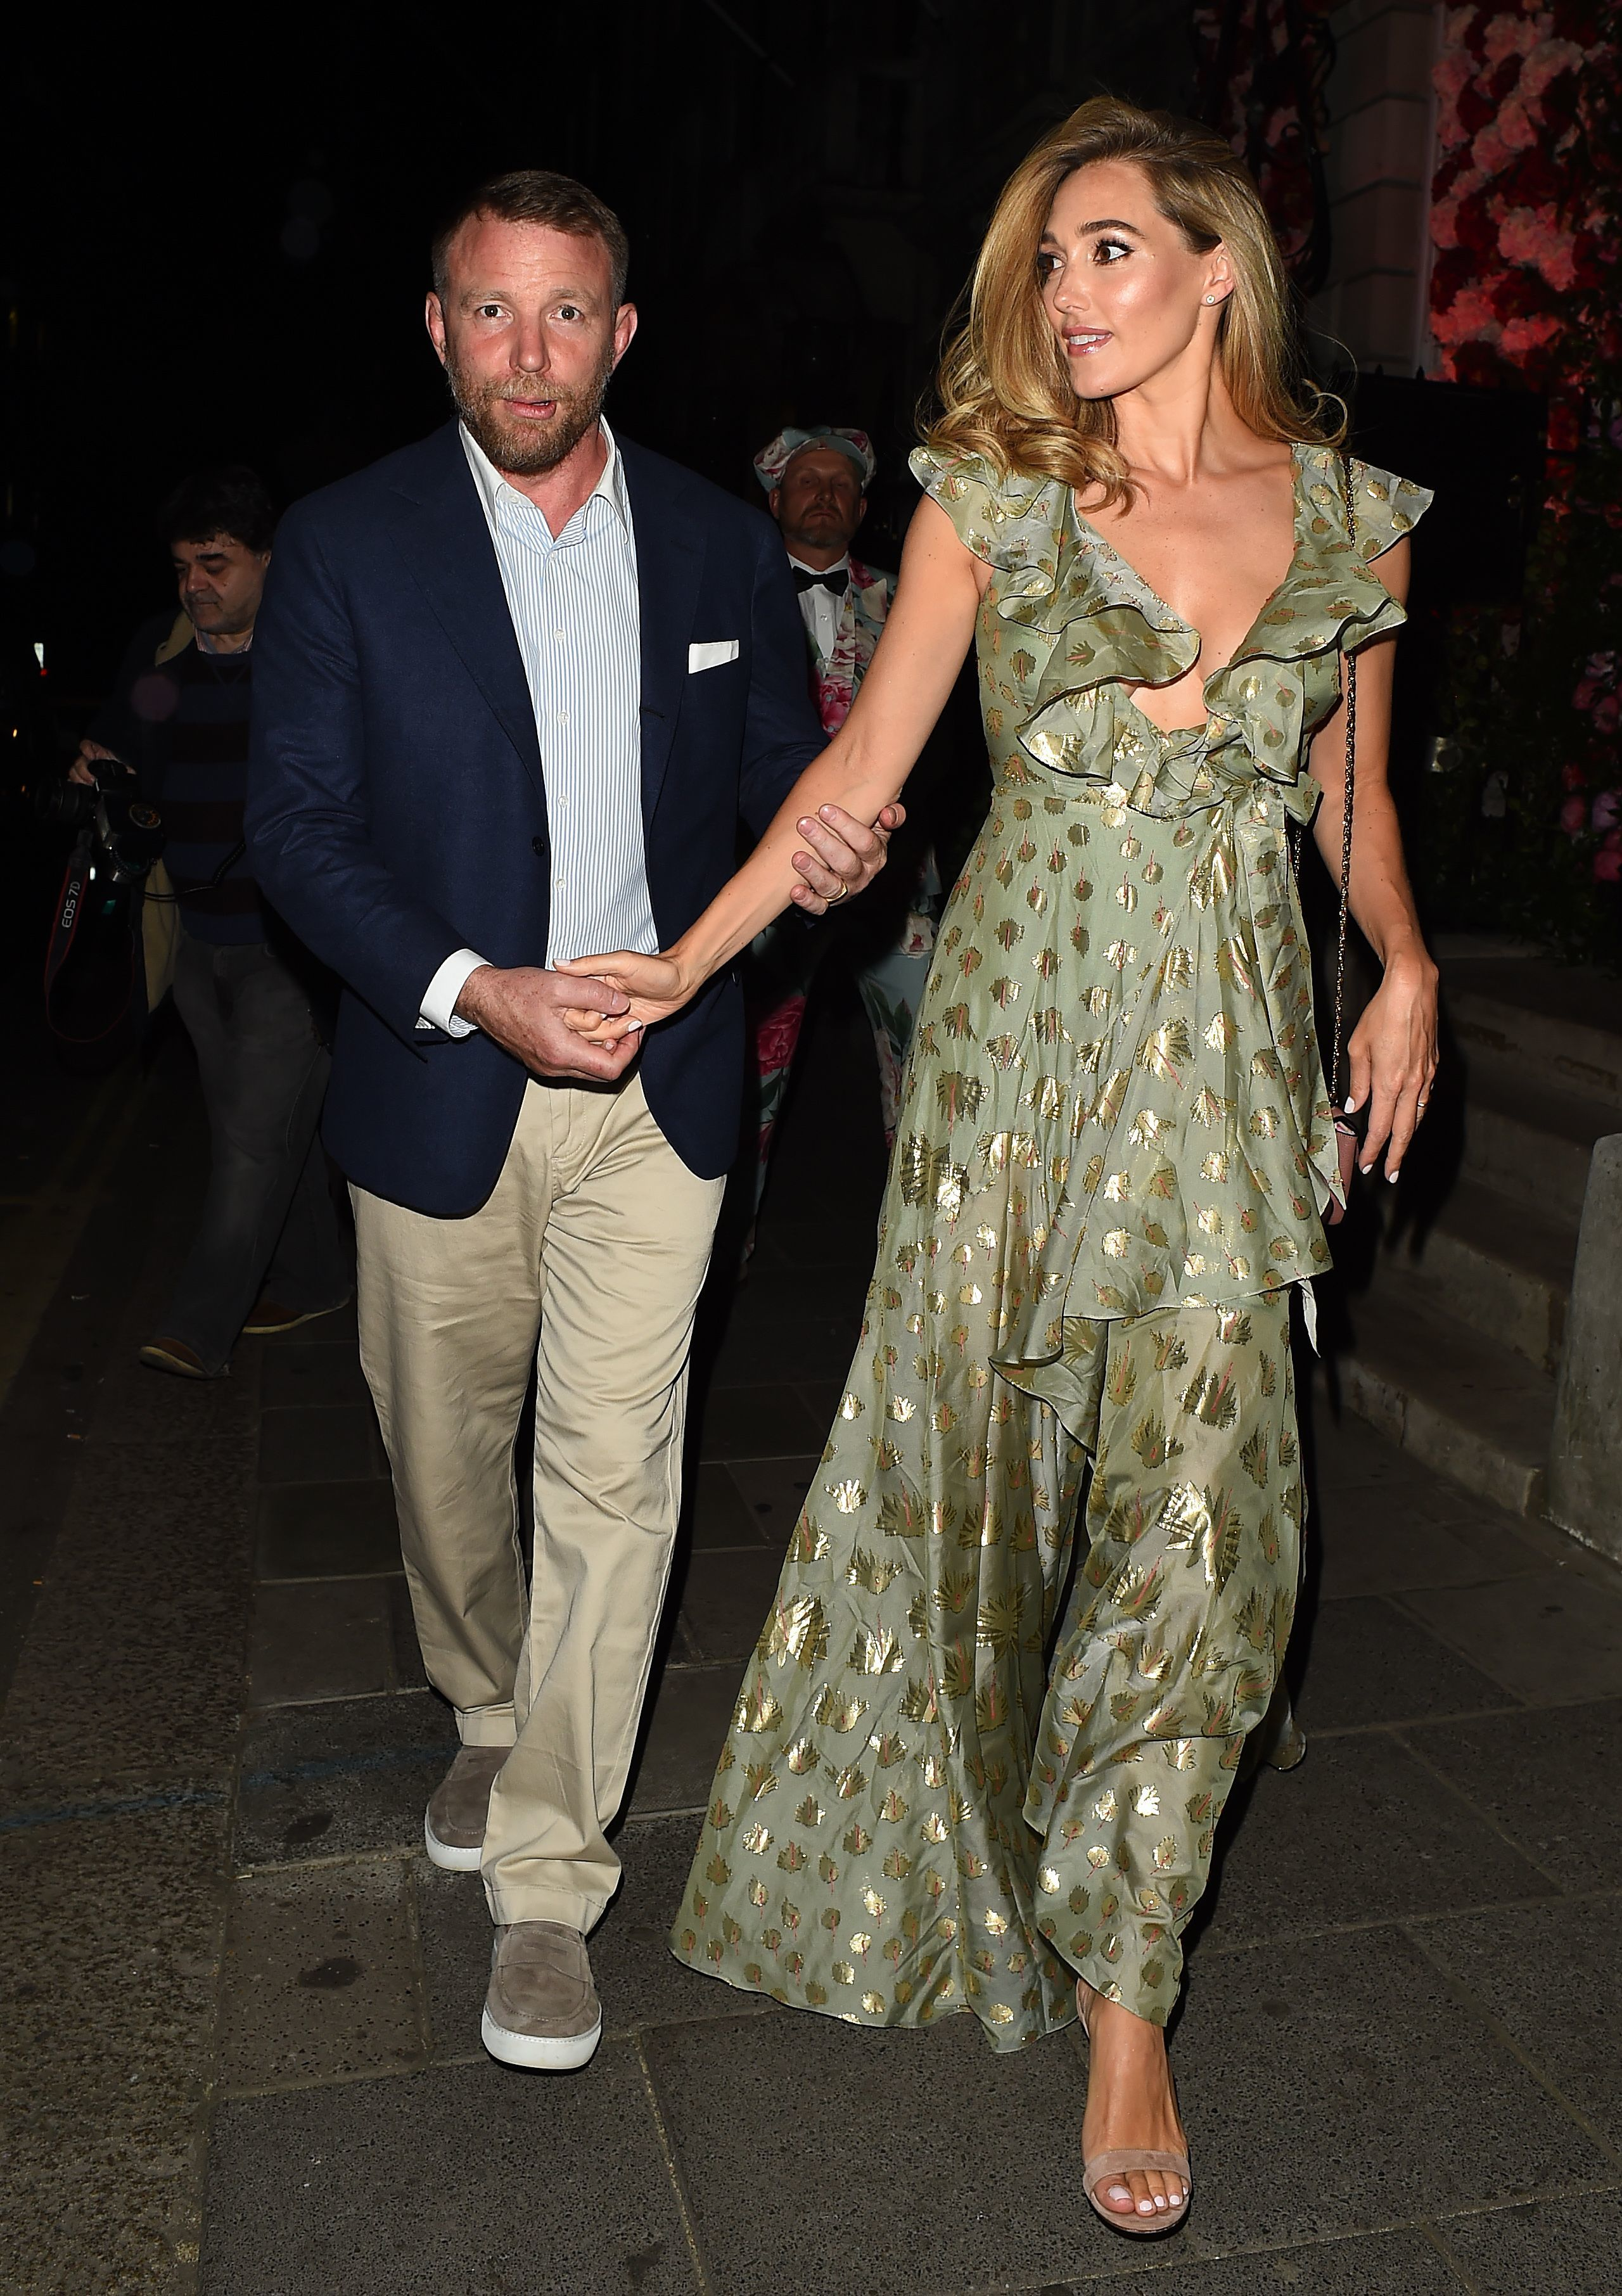 Guy Ritchie and Jacqui Ainsley attend the Annabels x Dior dinner in London on May 21,2 018.